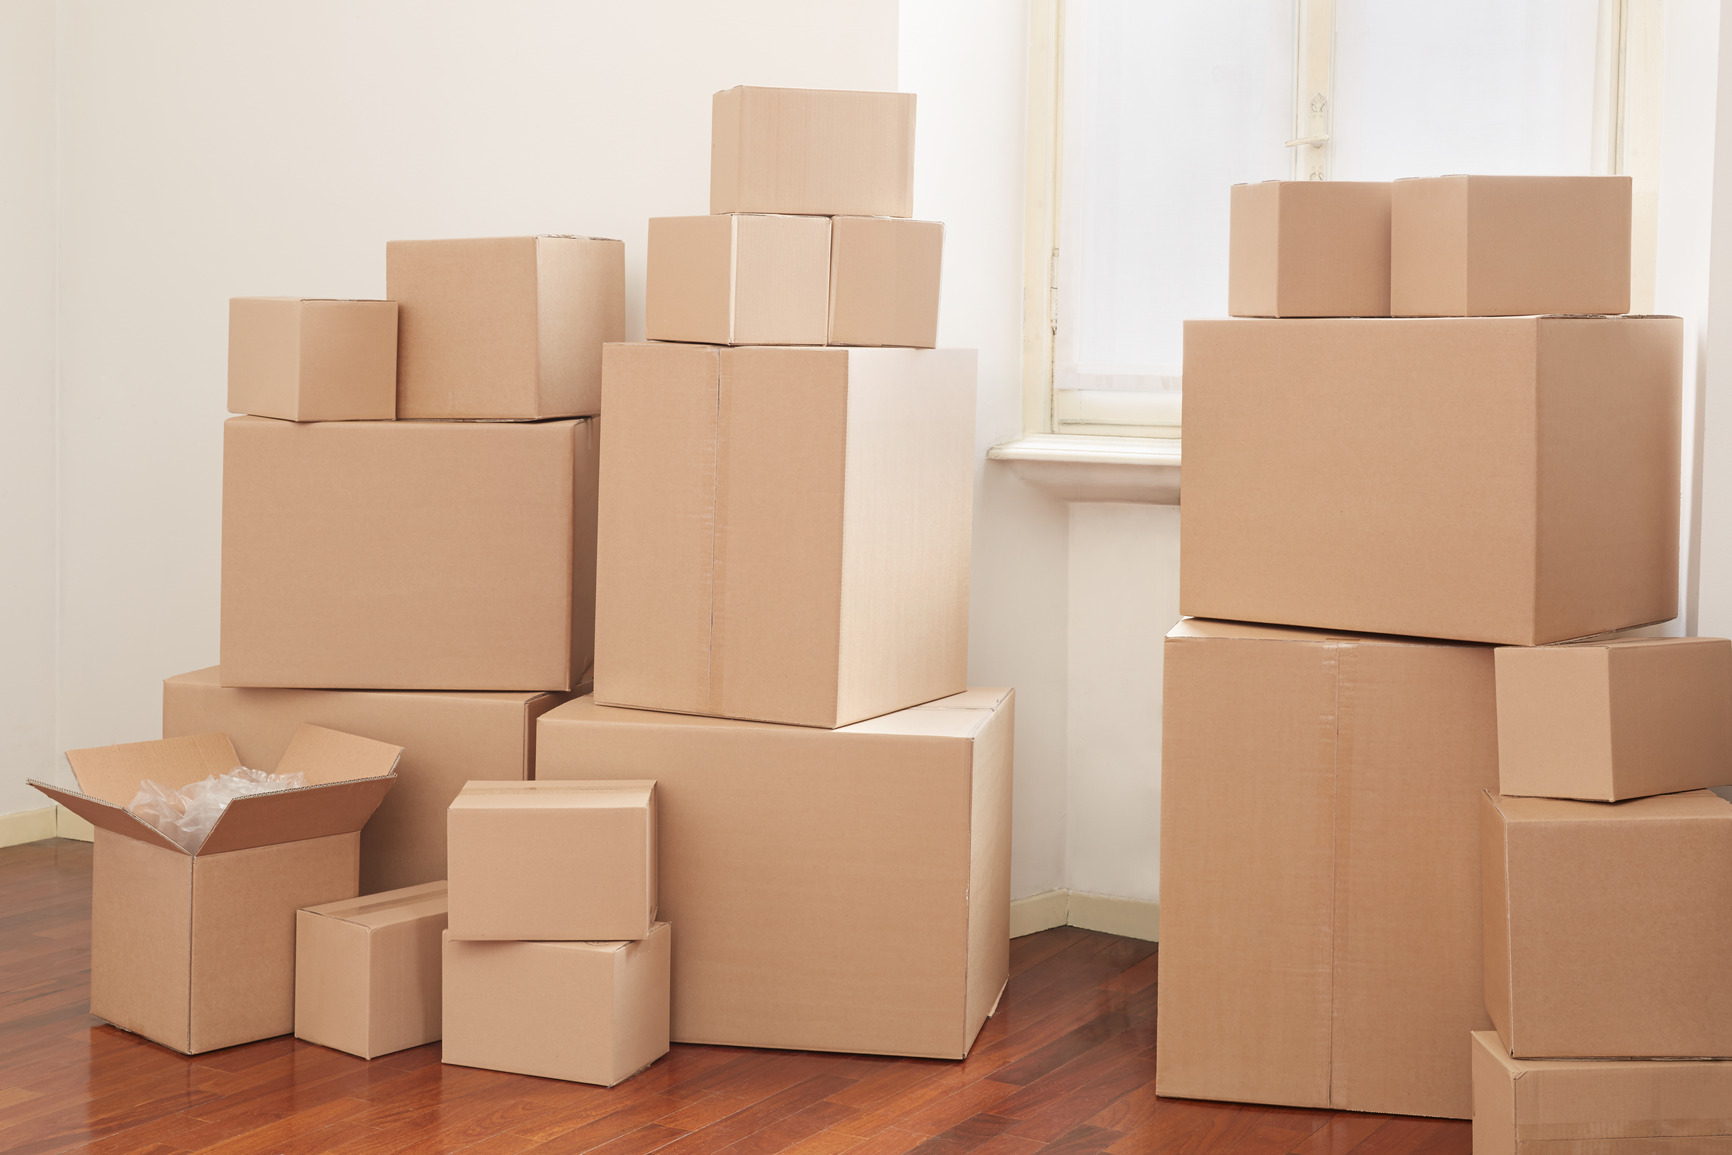 Jean Pearthree is moving!